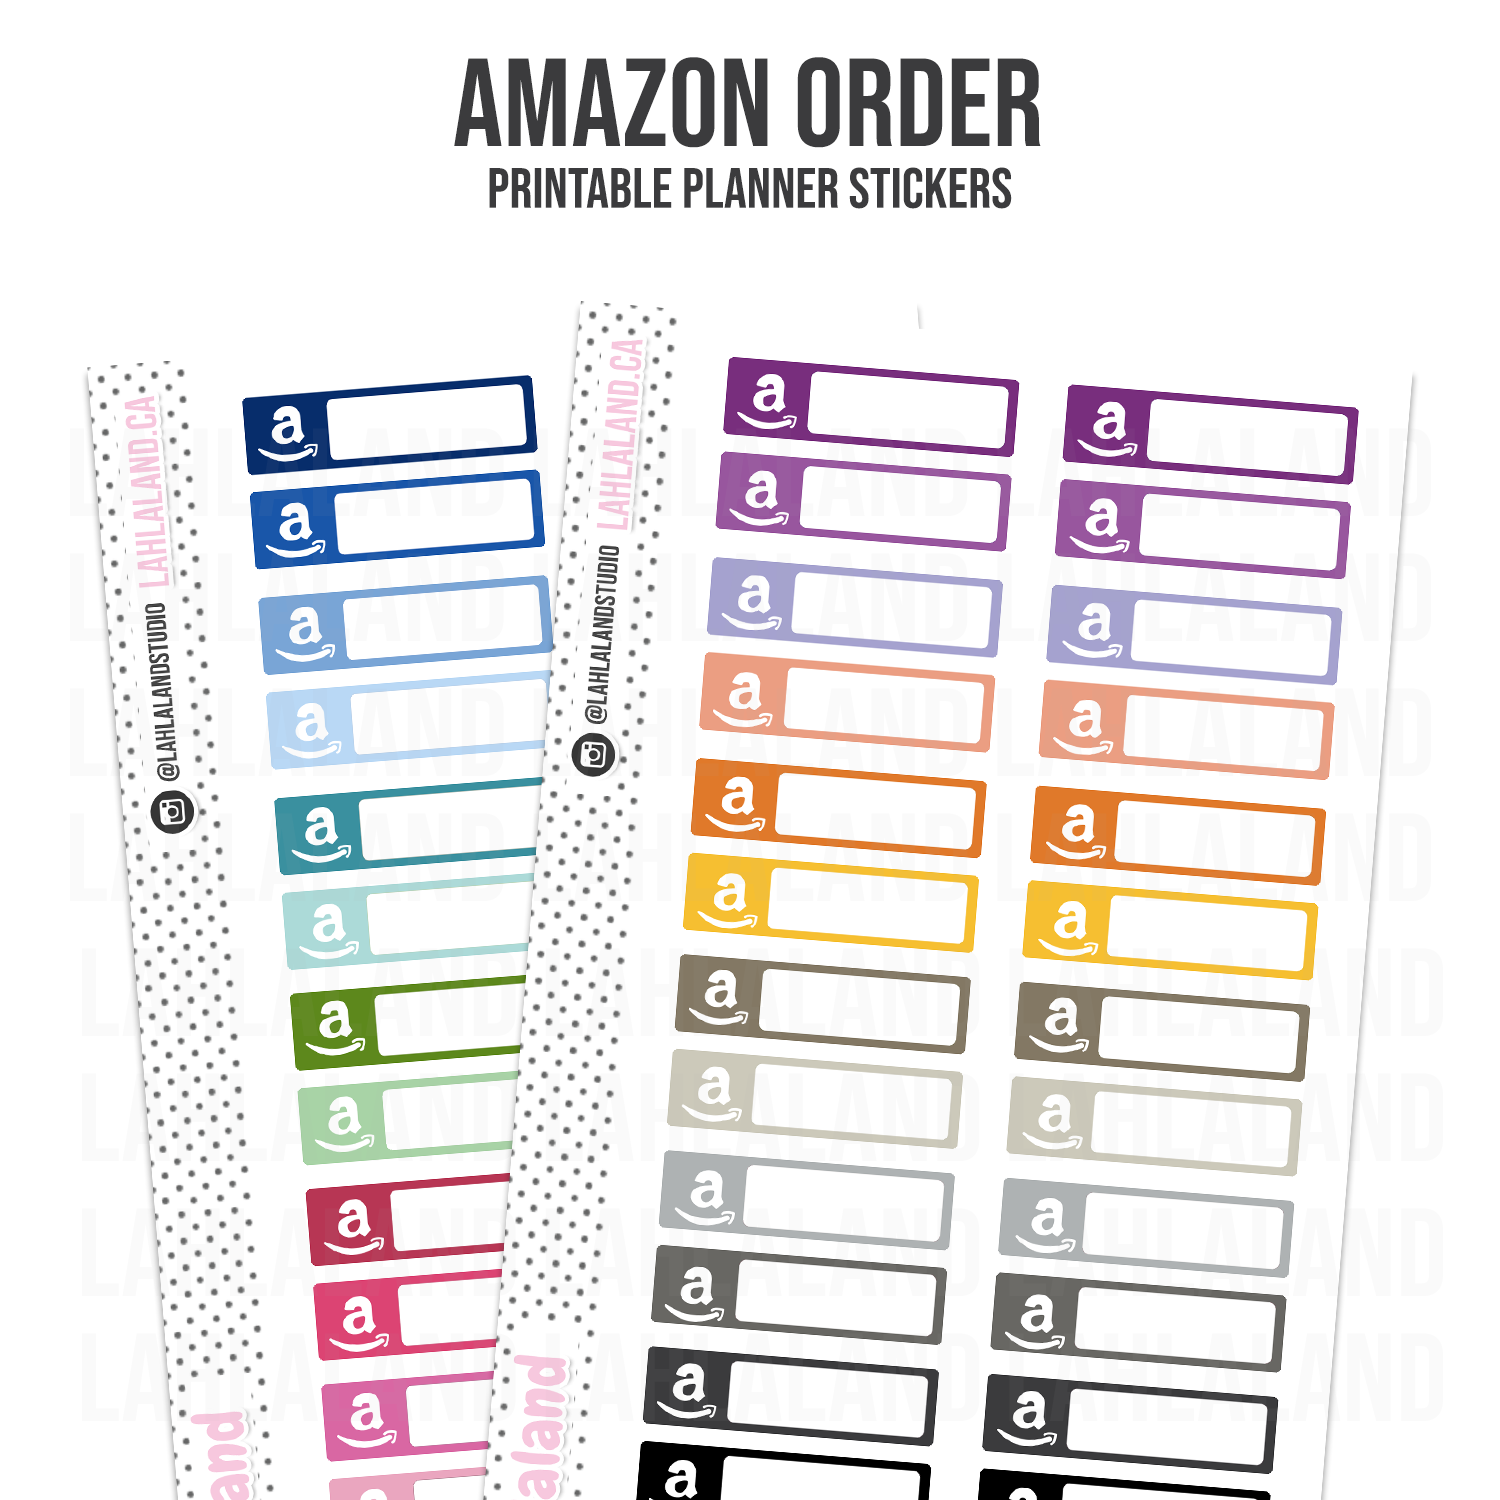 Amazon Order - Functional Stickers